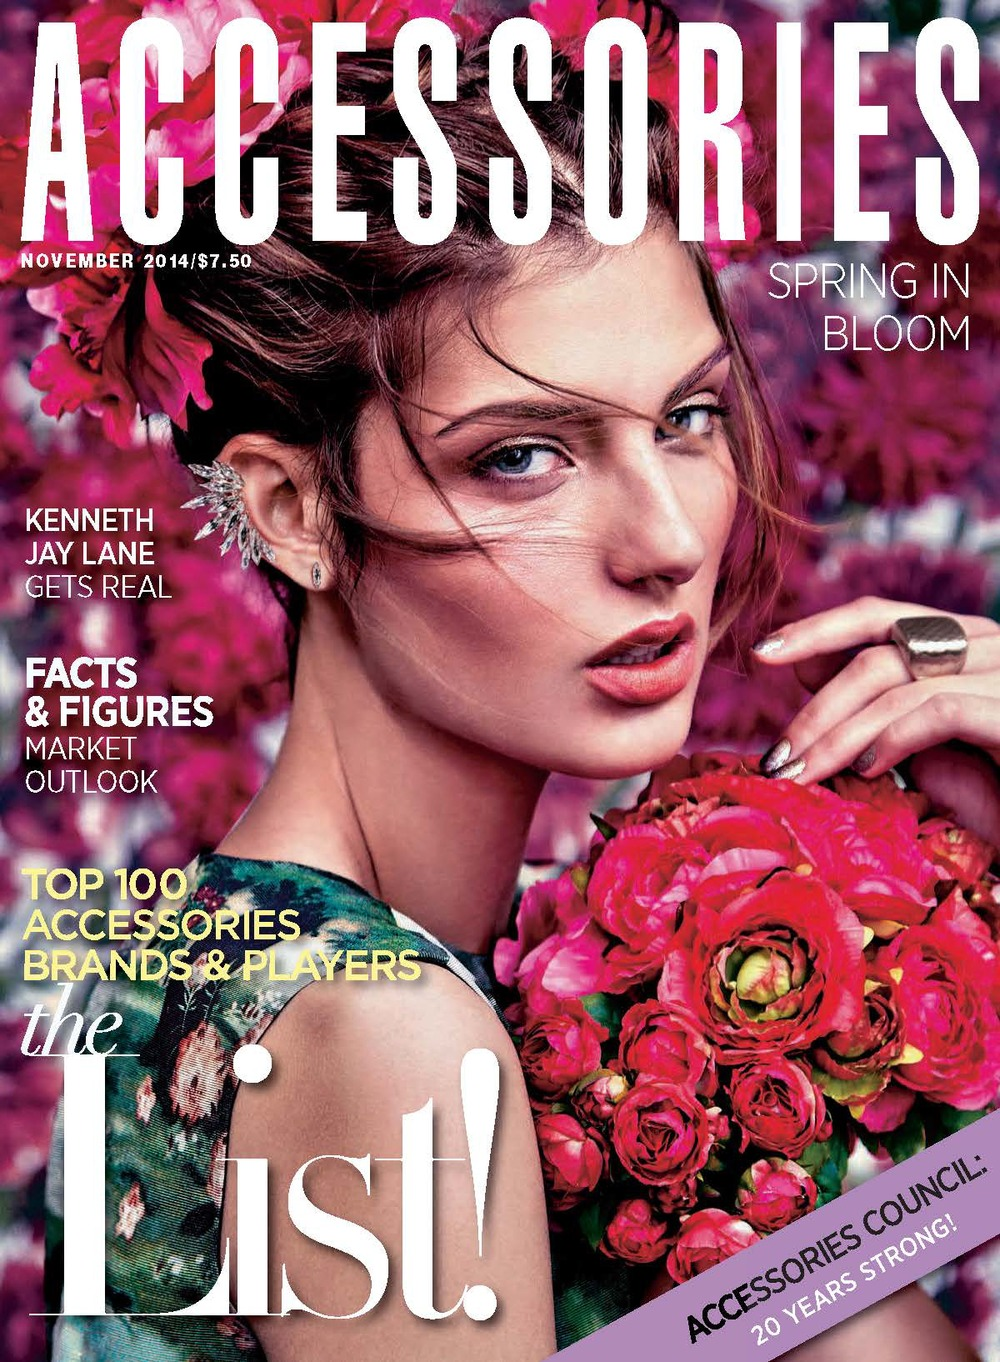 Cover image for Accessories Magazine - November 2014 issue